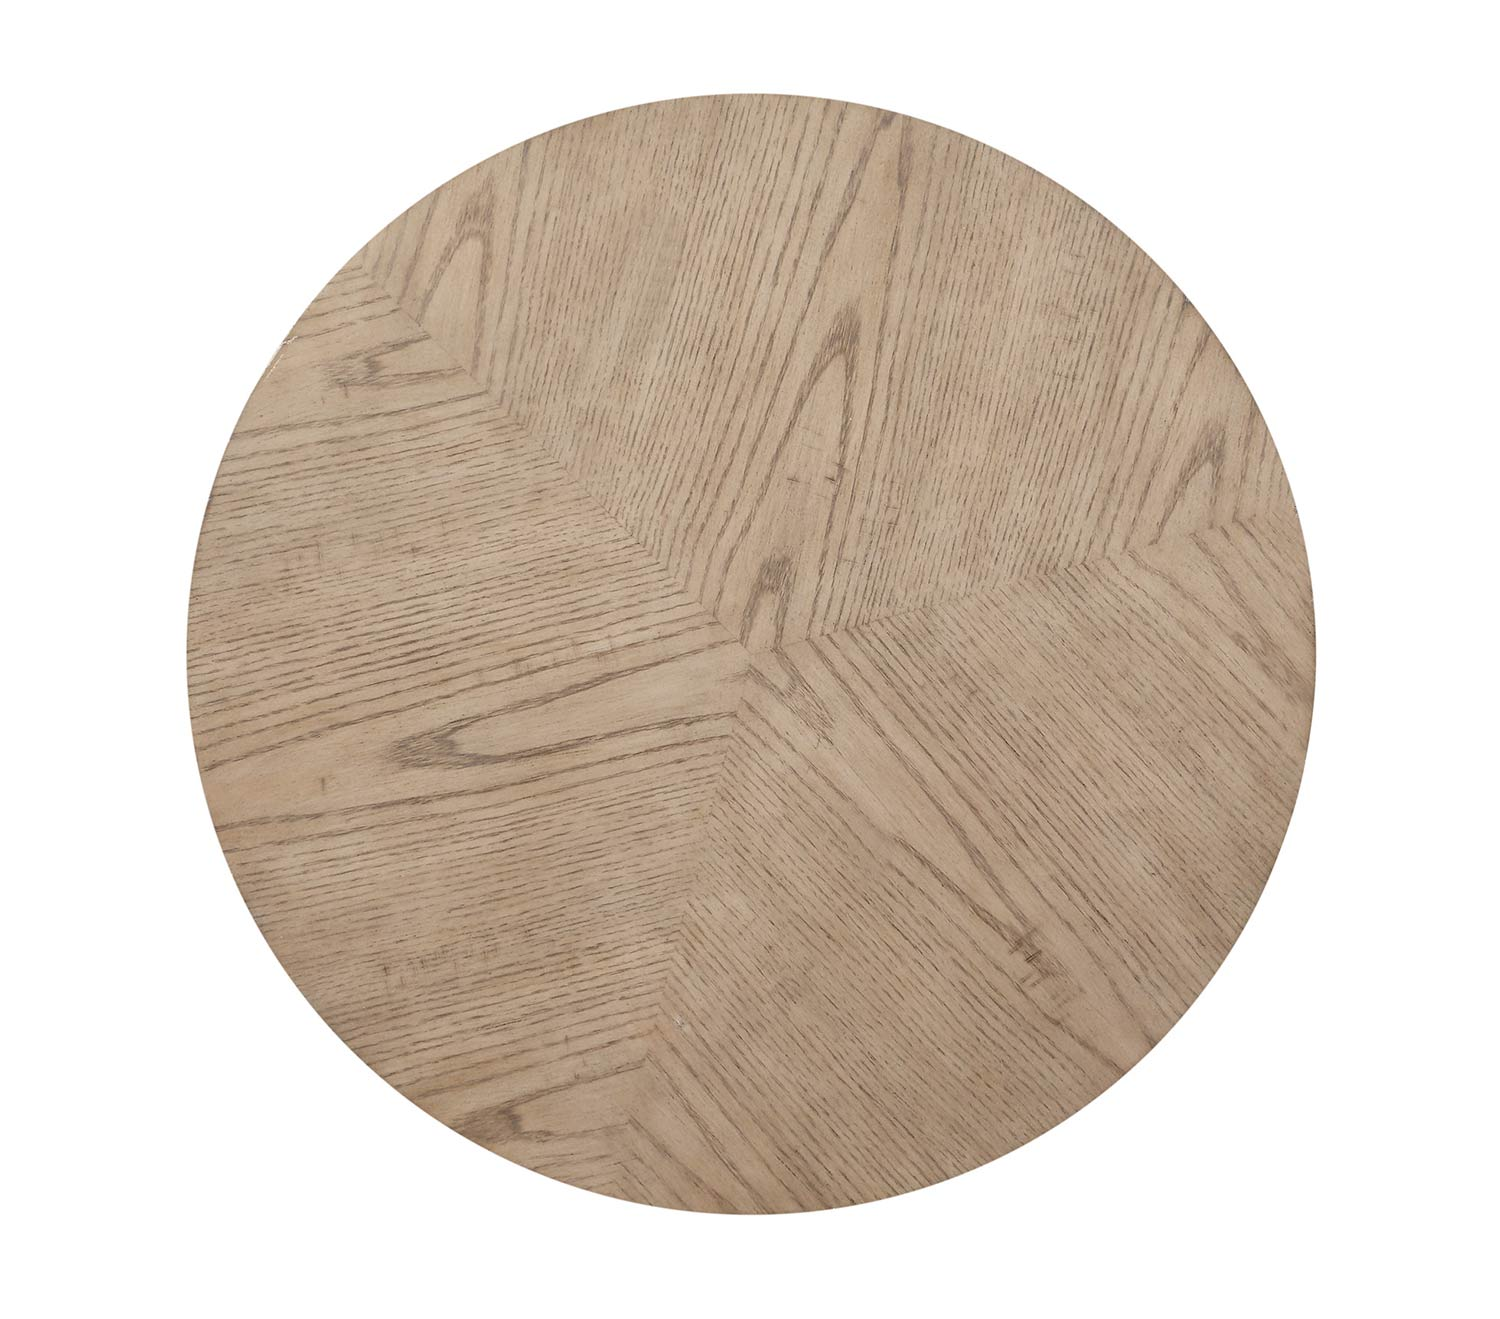 Homelegance Liatris Round End Table - Natural Gray